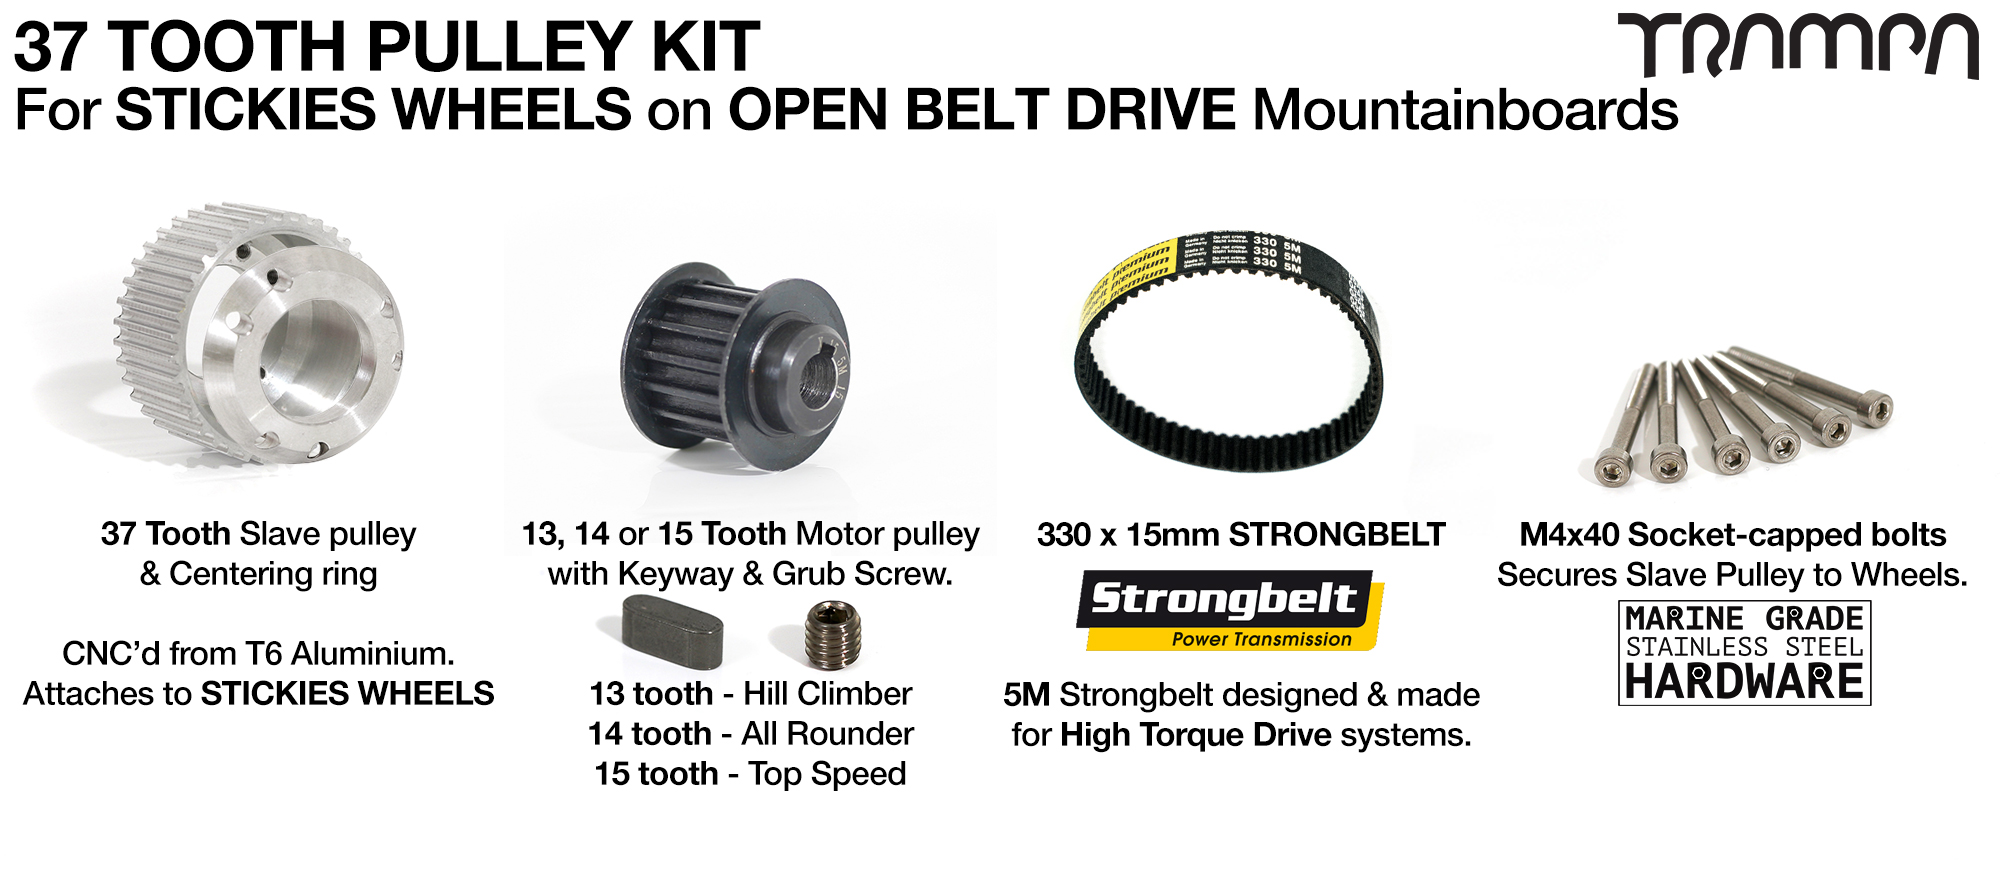 ORRSOM Longboard Pulley kit with 33 or 37 Tooth Slave & 350mm Belt to fit 83 or 90mm STICKIES Wheels